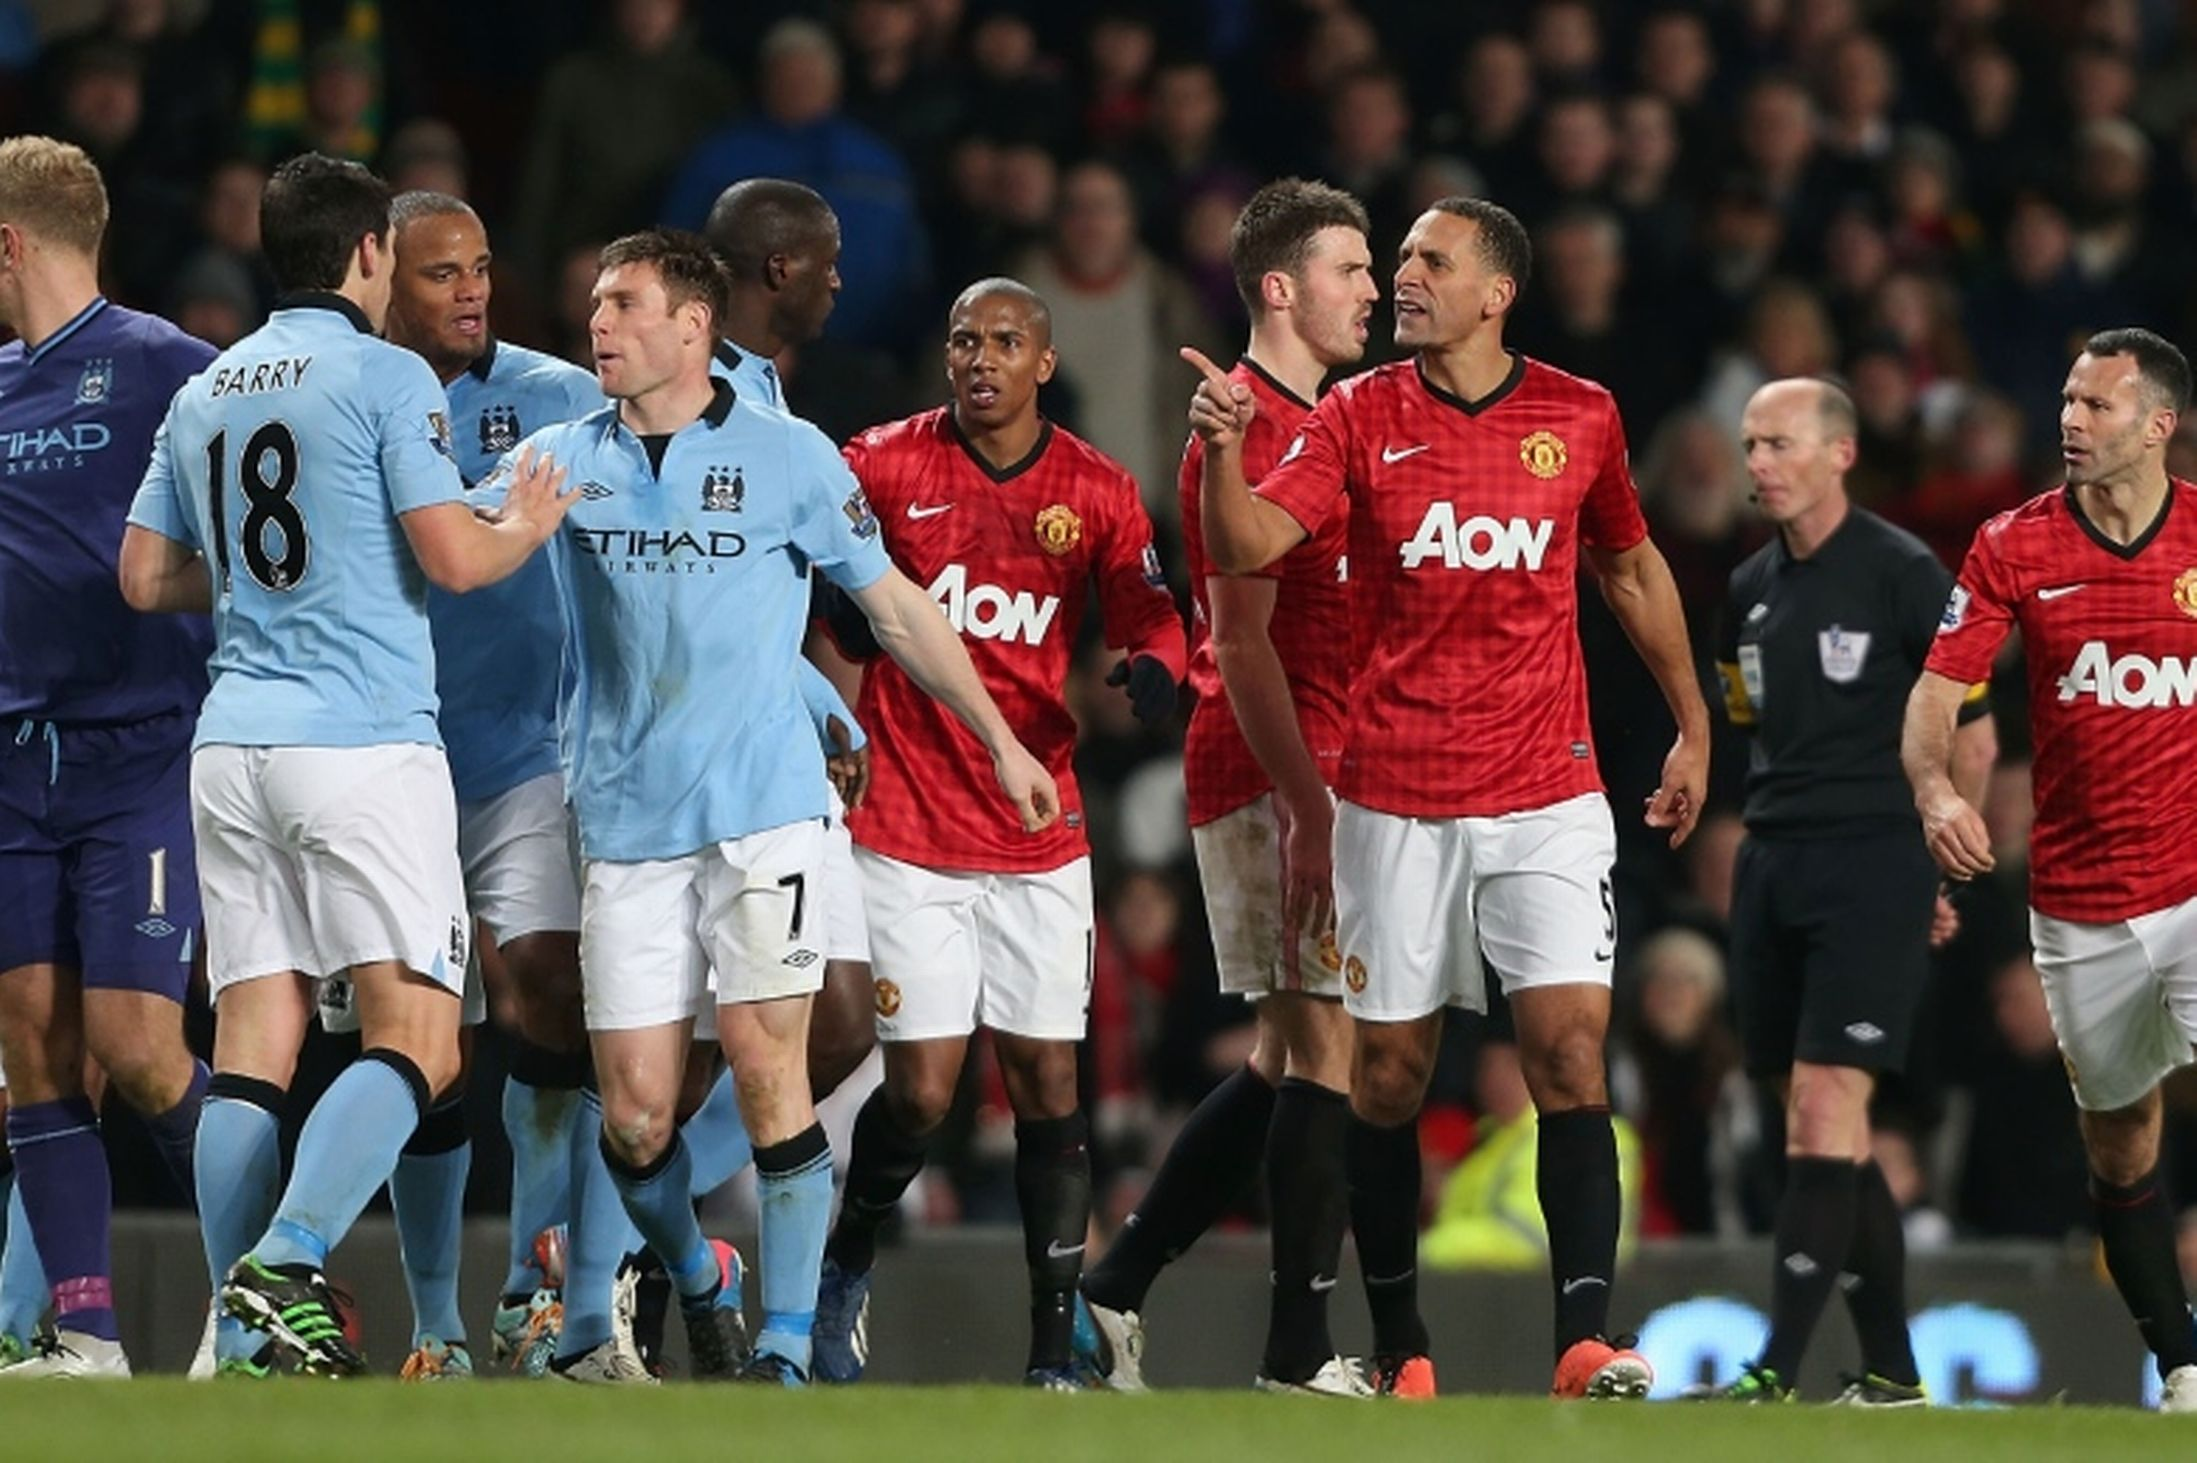 Manchester-United-vs-Manchester-City